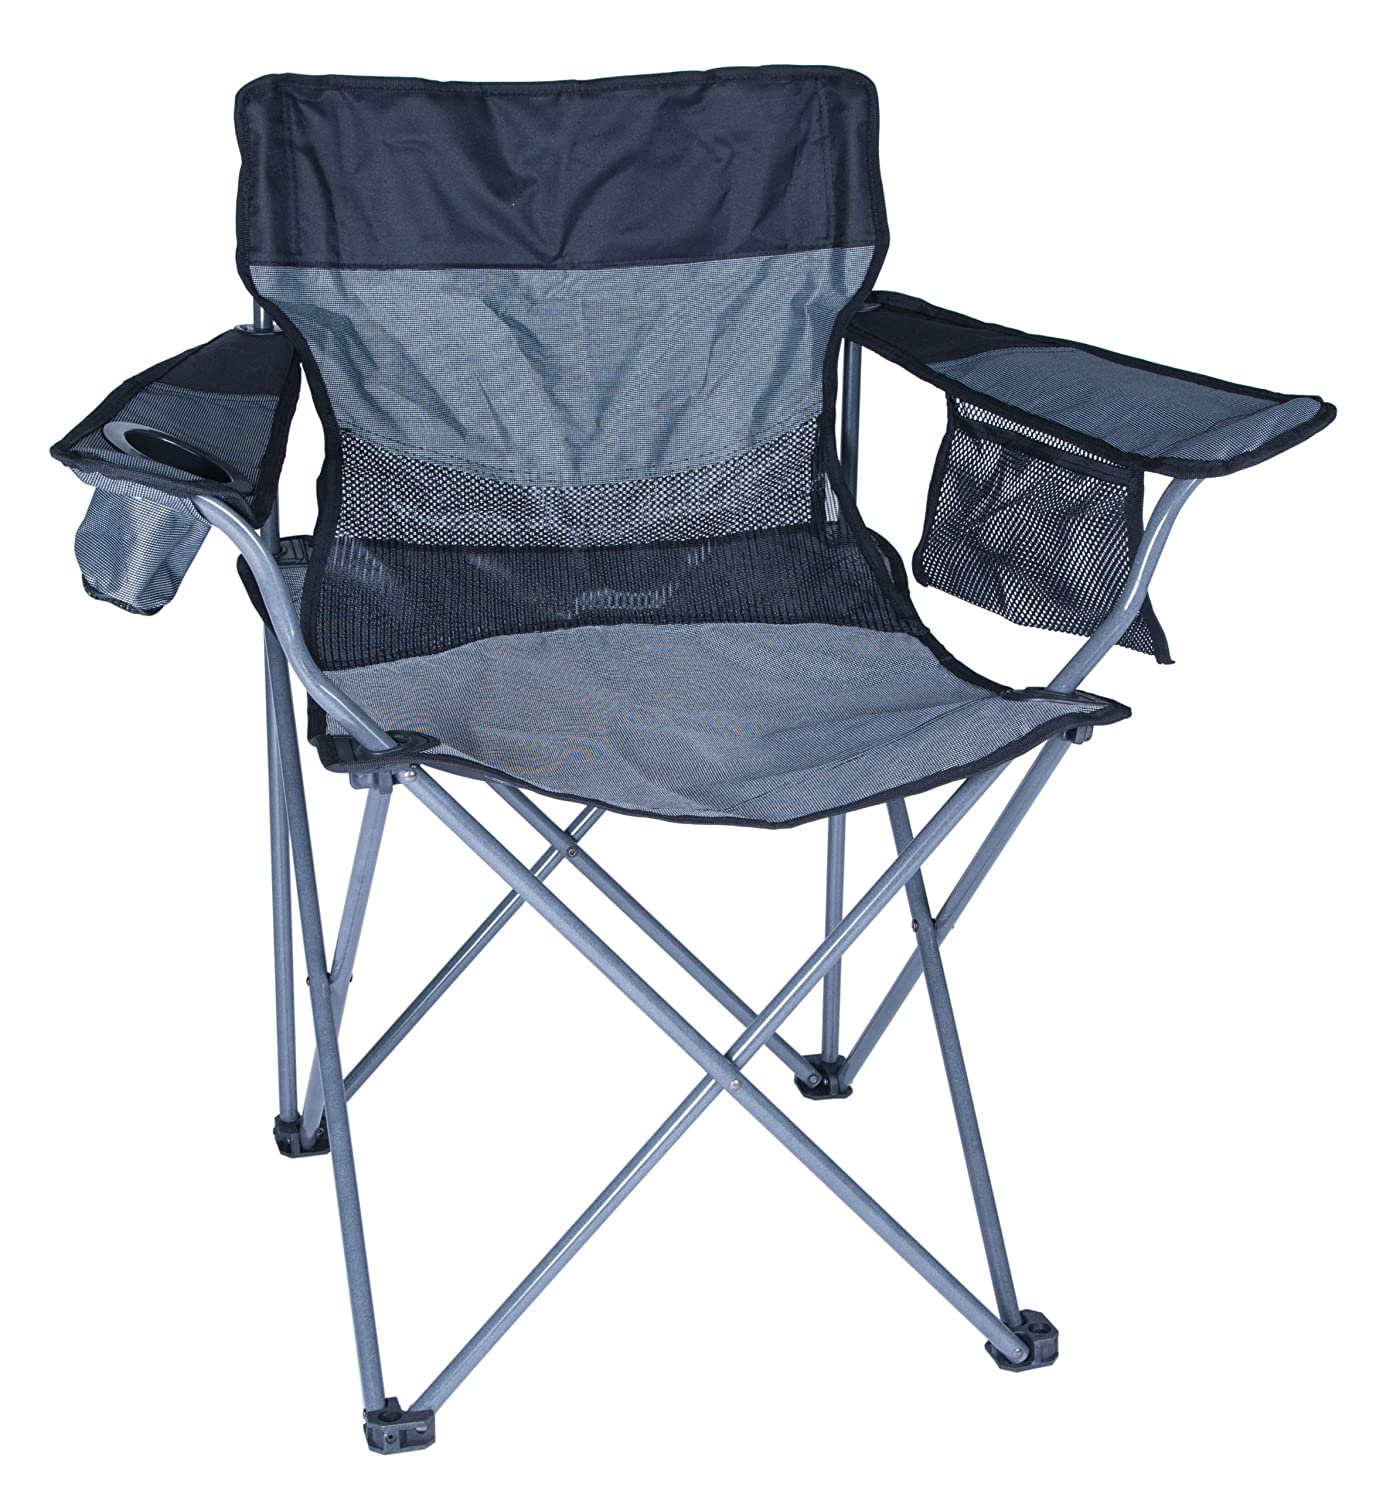 Amazon.com : Stansport Apex Oversized High Back Arm Chair (Black/Silver) :  Camping Chairs : Sports U0026 Outdoors